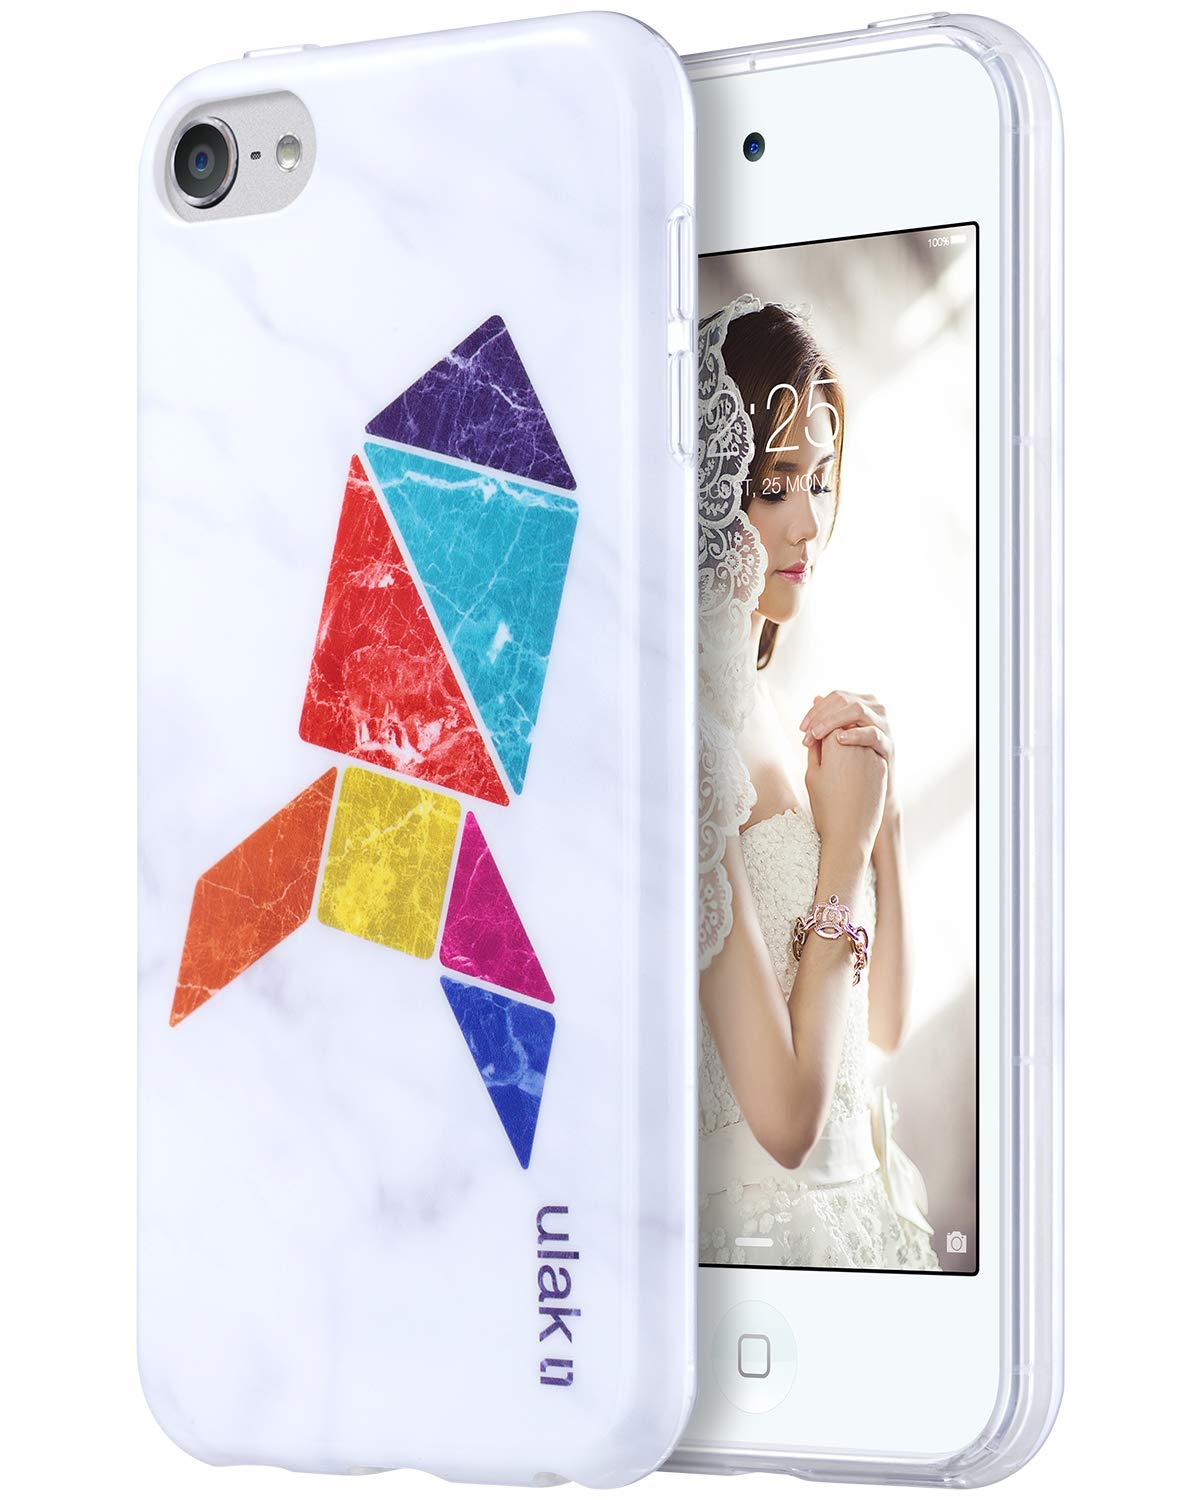 ULAK iPod Touch 7 Case, iPod Touch 6 Case, Slim Fit Anti-Scratch Flexible Soft TPU Bumper PC Back Hybrid Protective Case for iPod Touch 5 5th / 6th / 7th Generation, Marble+Tangram Fox